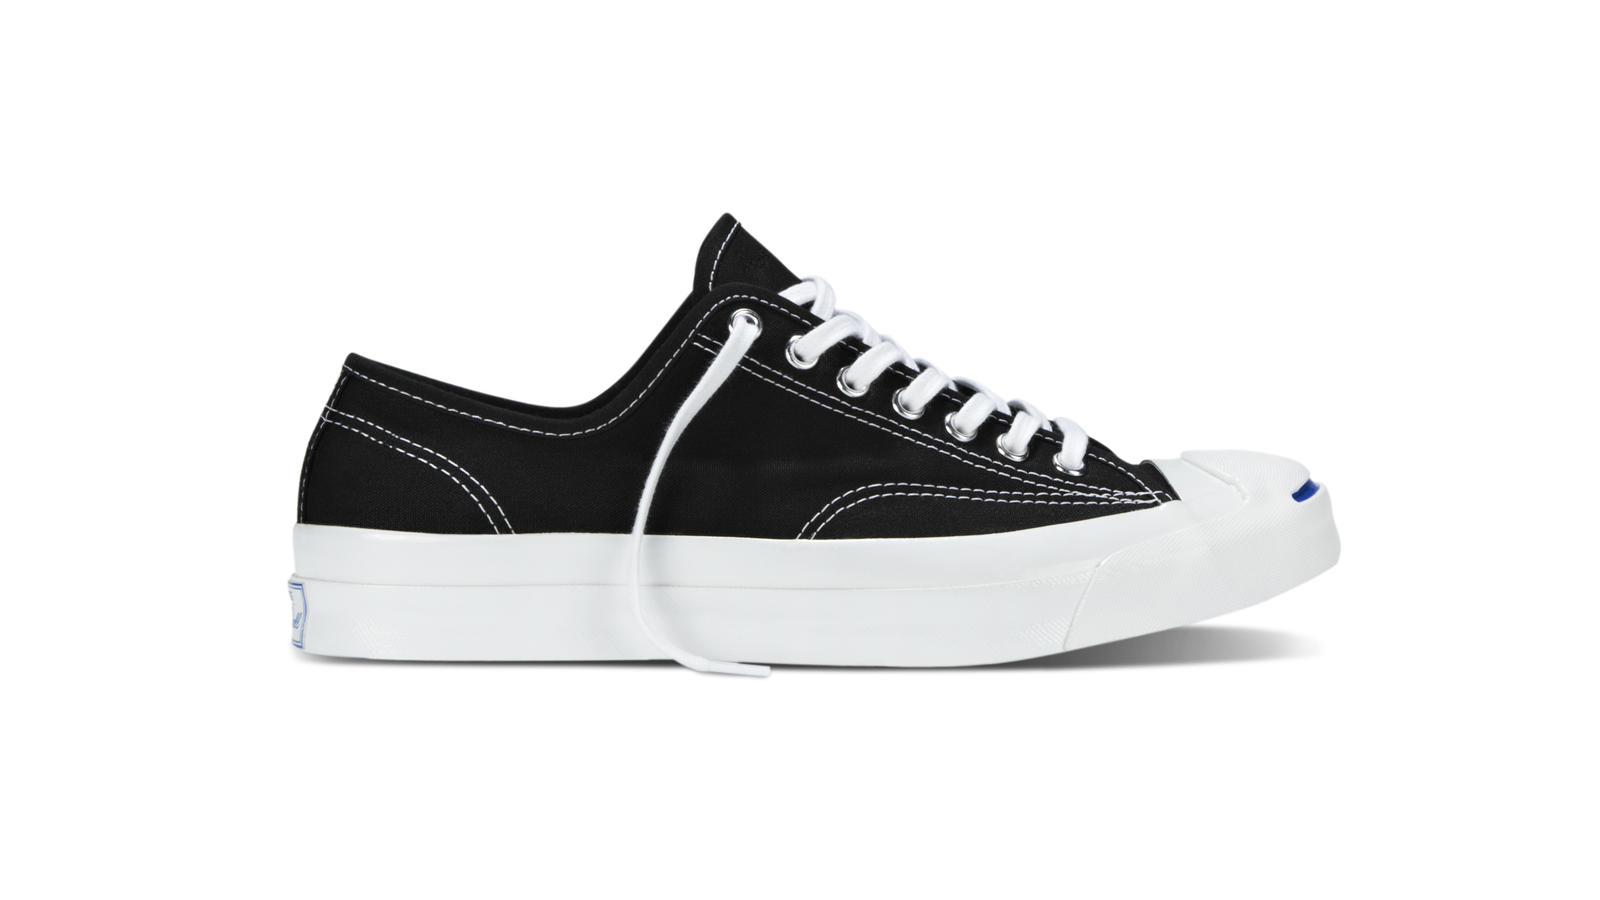 loopschoenen Koop Authentiek New York CONVERSE DEBUTS THE JACK PURCELL SIGNATURE SNEAKER - Nike News